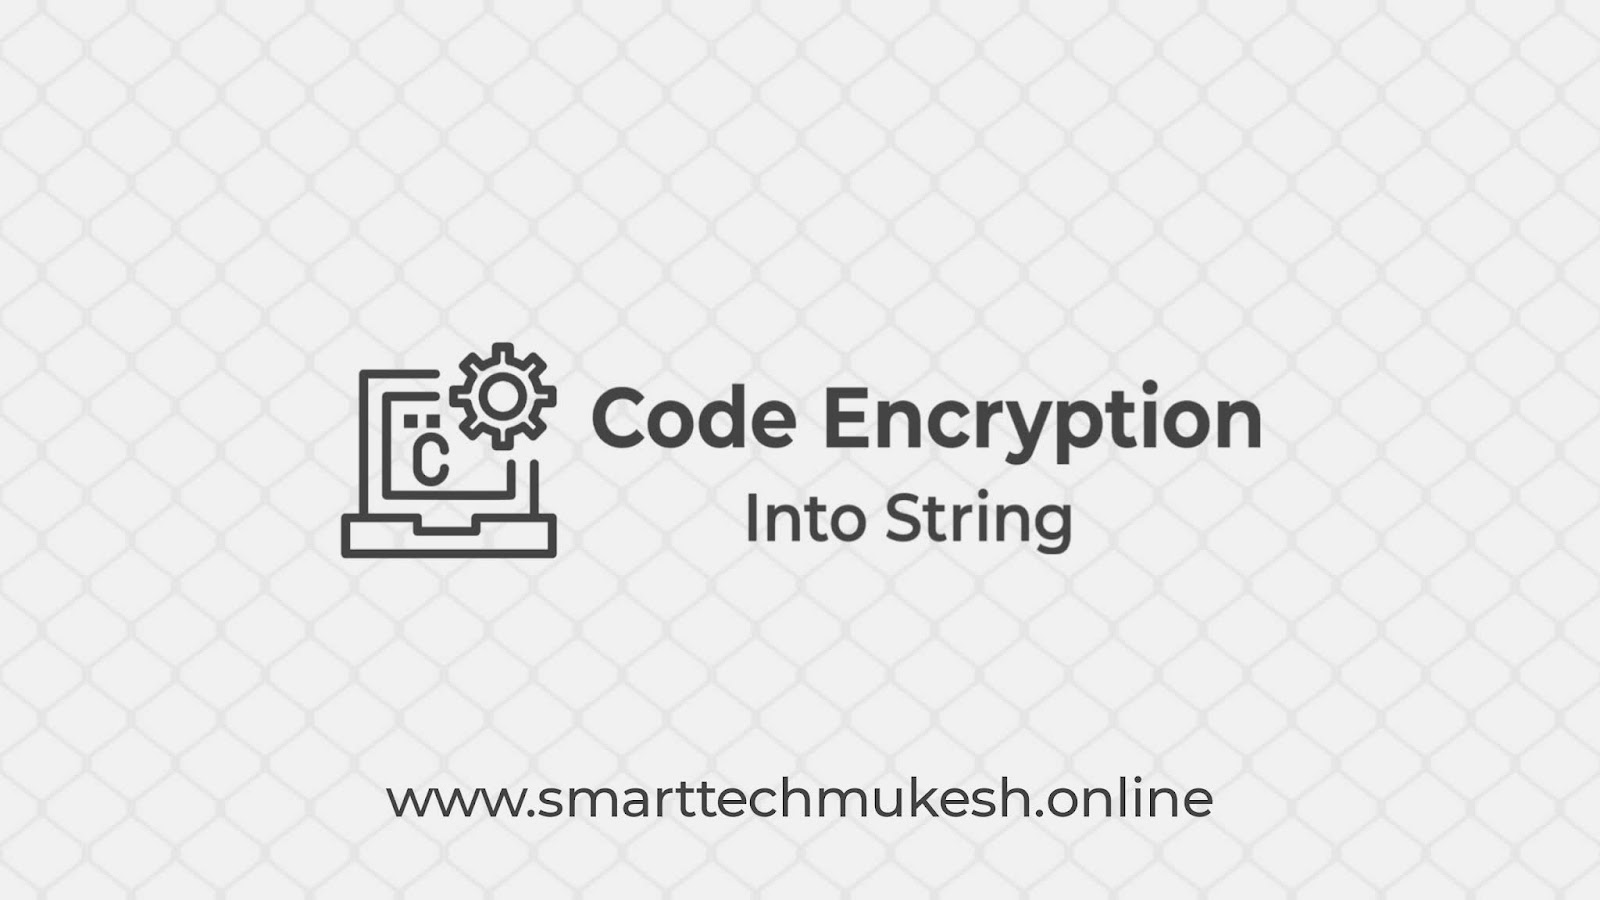 Code Encryption Into String [Html, Css, JS, TXT]